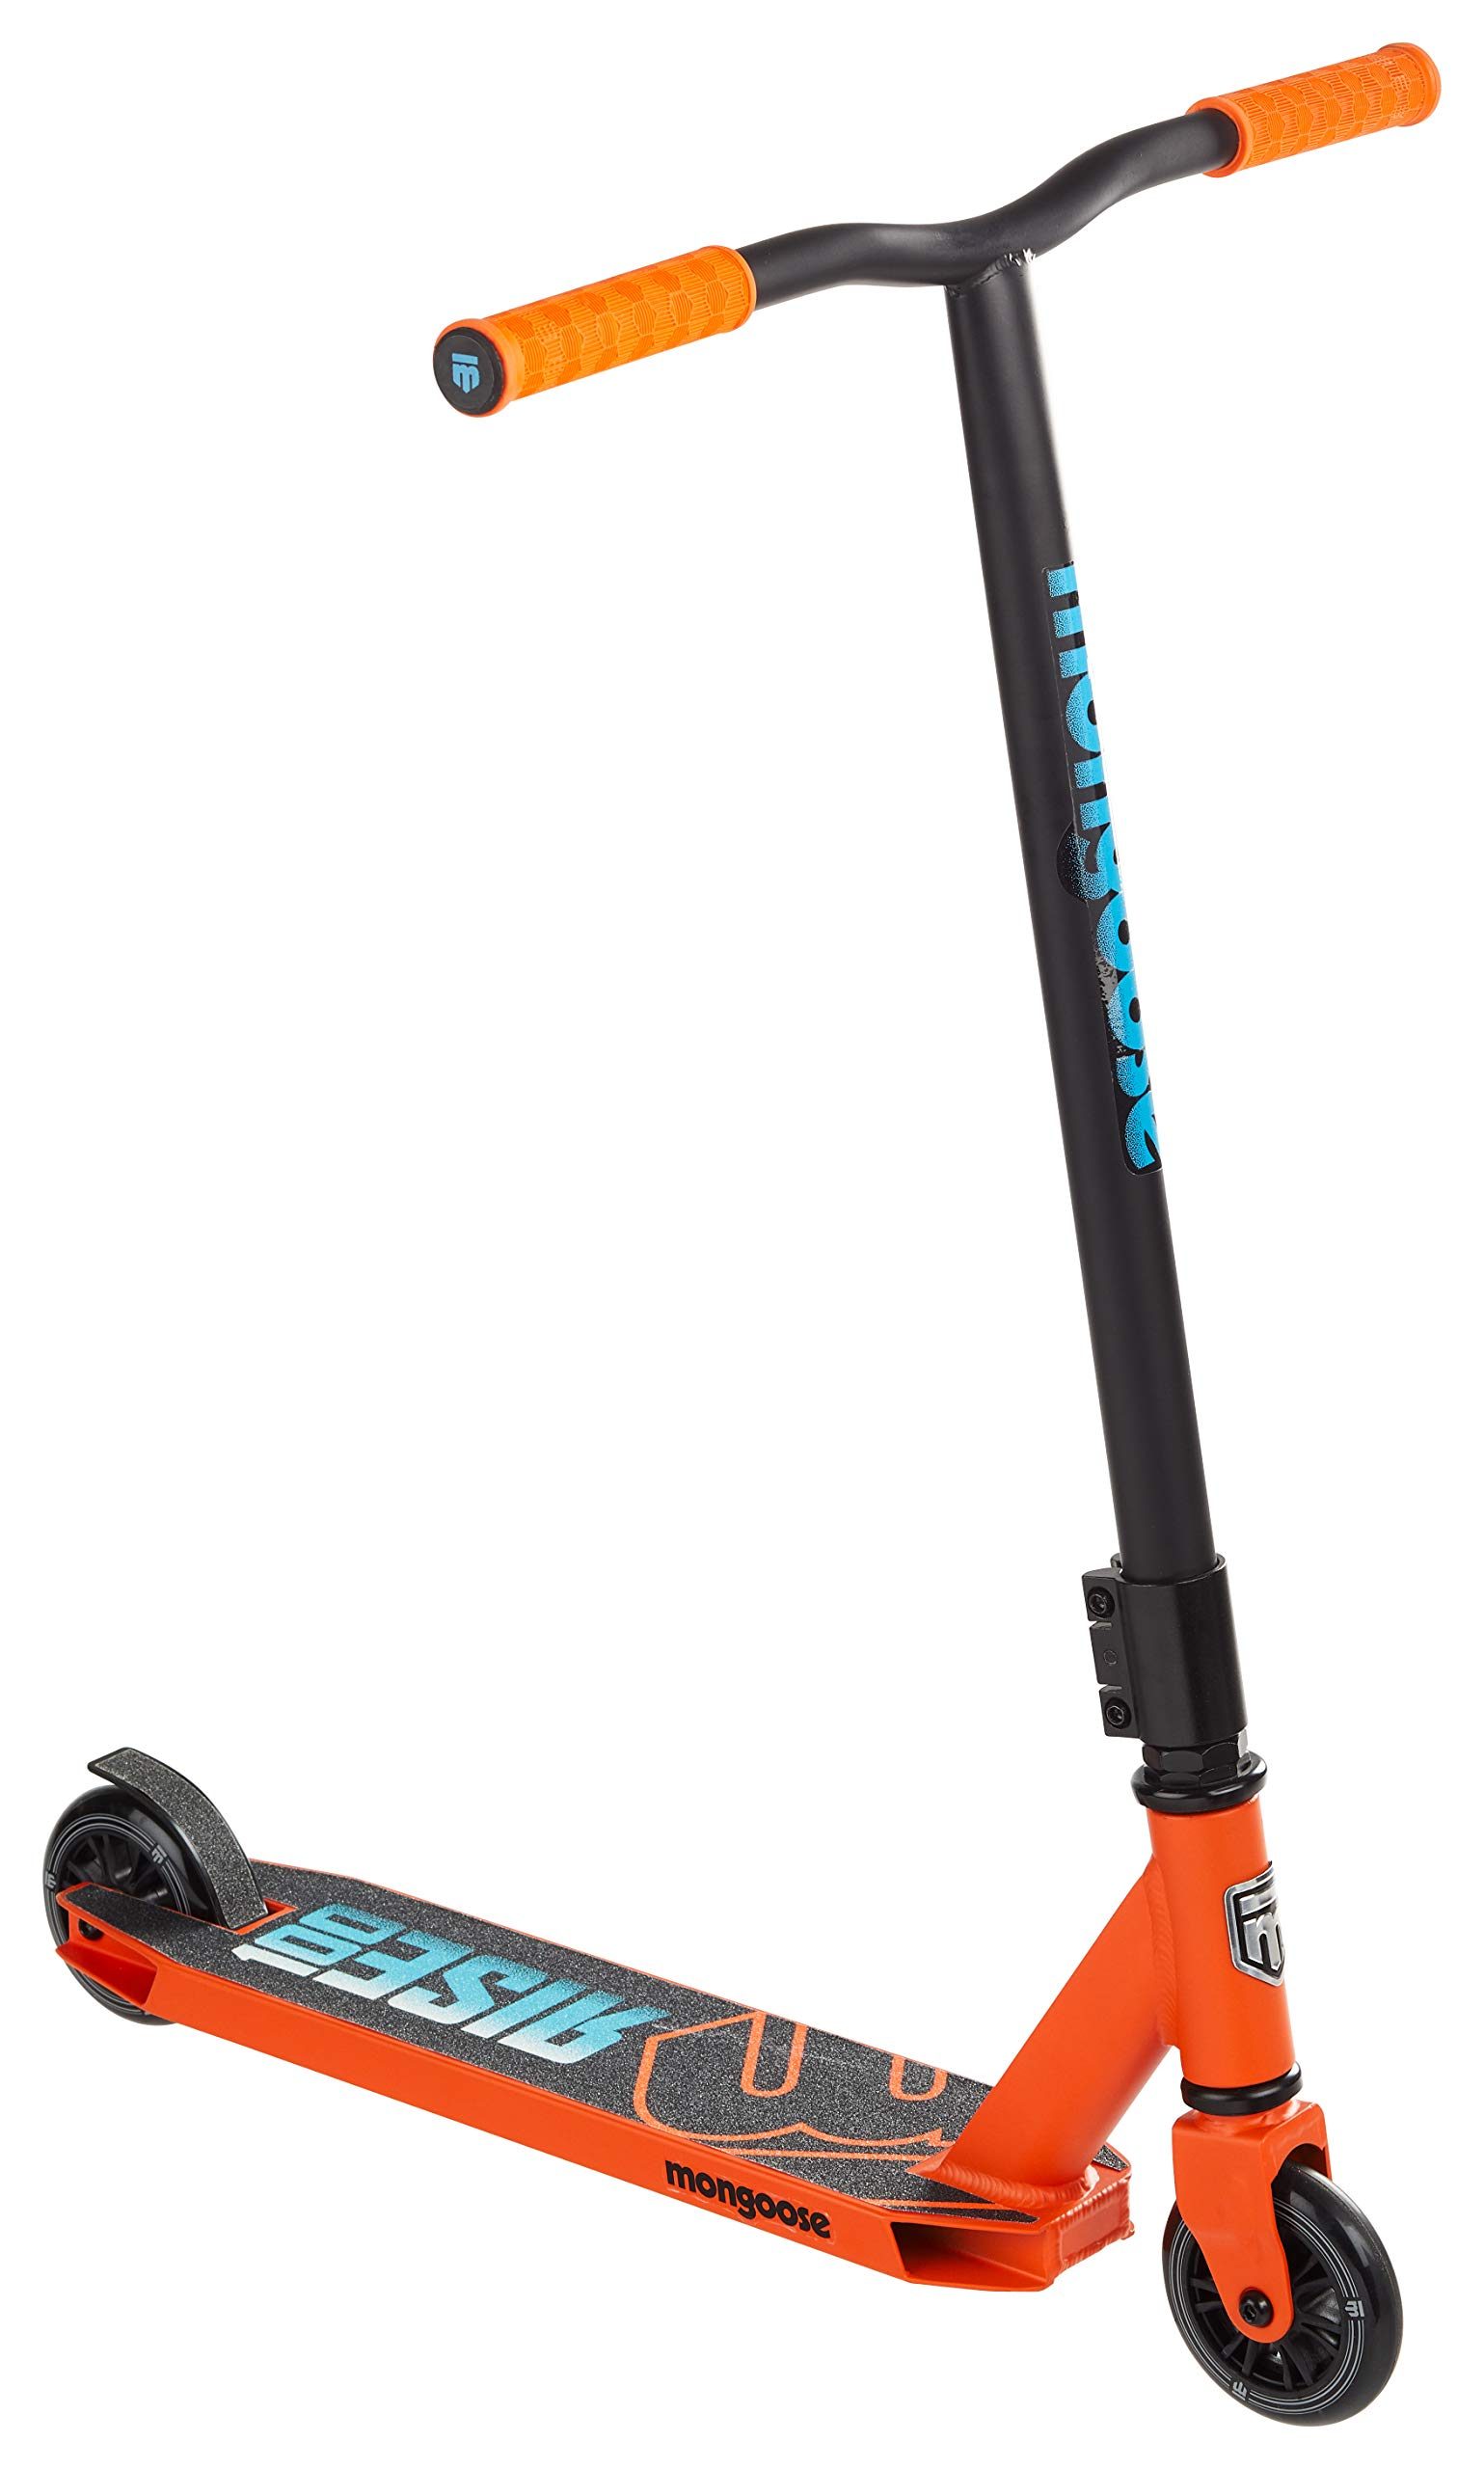 Mongoose Rise 100 Freestyle Stunt Kick Scooter, Featuring Lightweight Alloy Deck with Full-Coverage Max Grip and Bike-Style Handlebars, 100mm Wheels, Orange/Blue by Mongoose